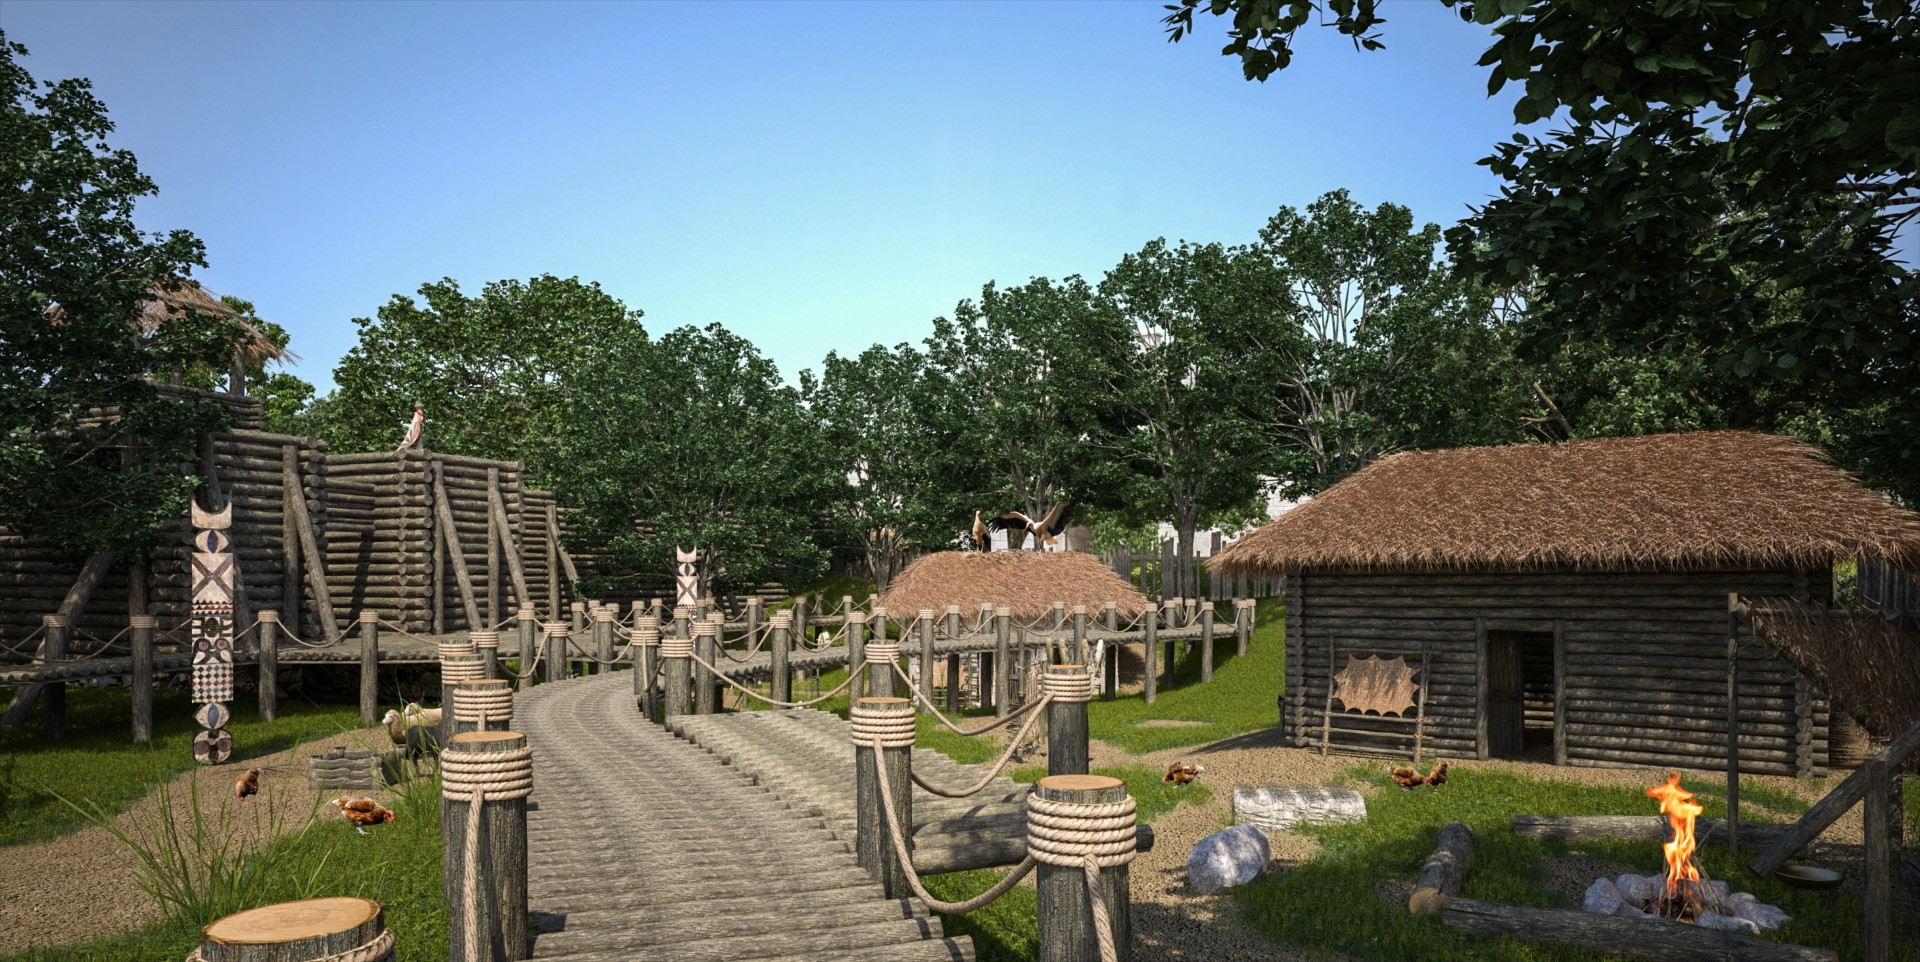 The largest historical park in the world opens near the city of Varna